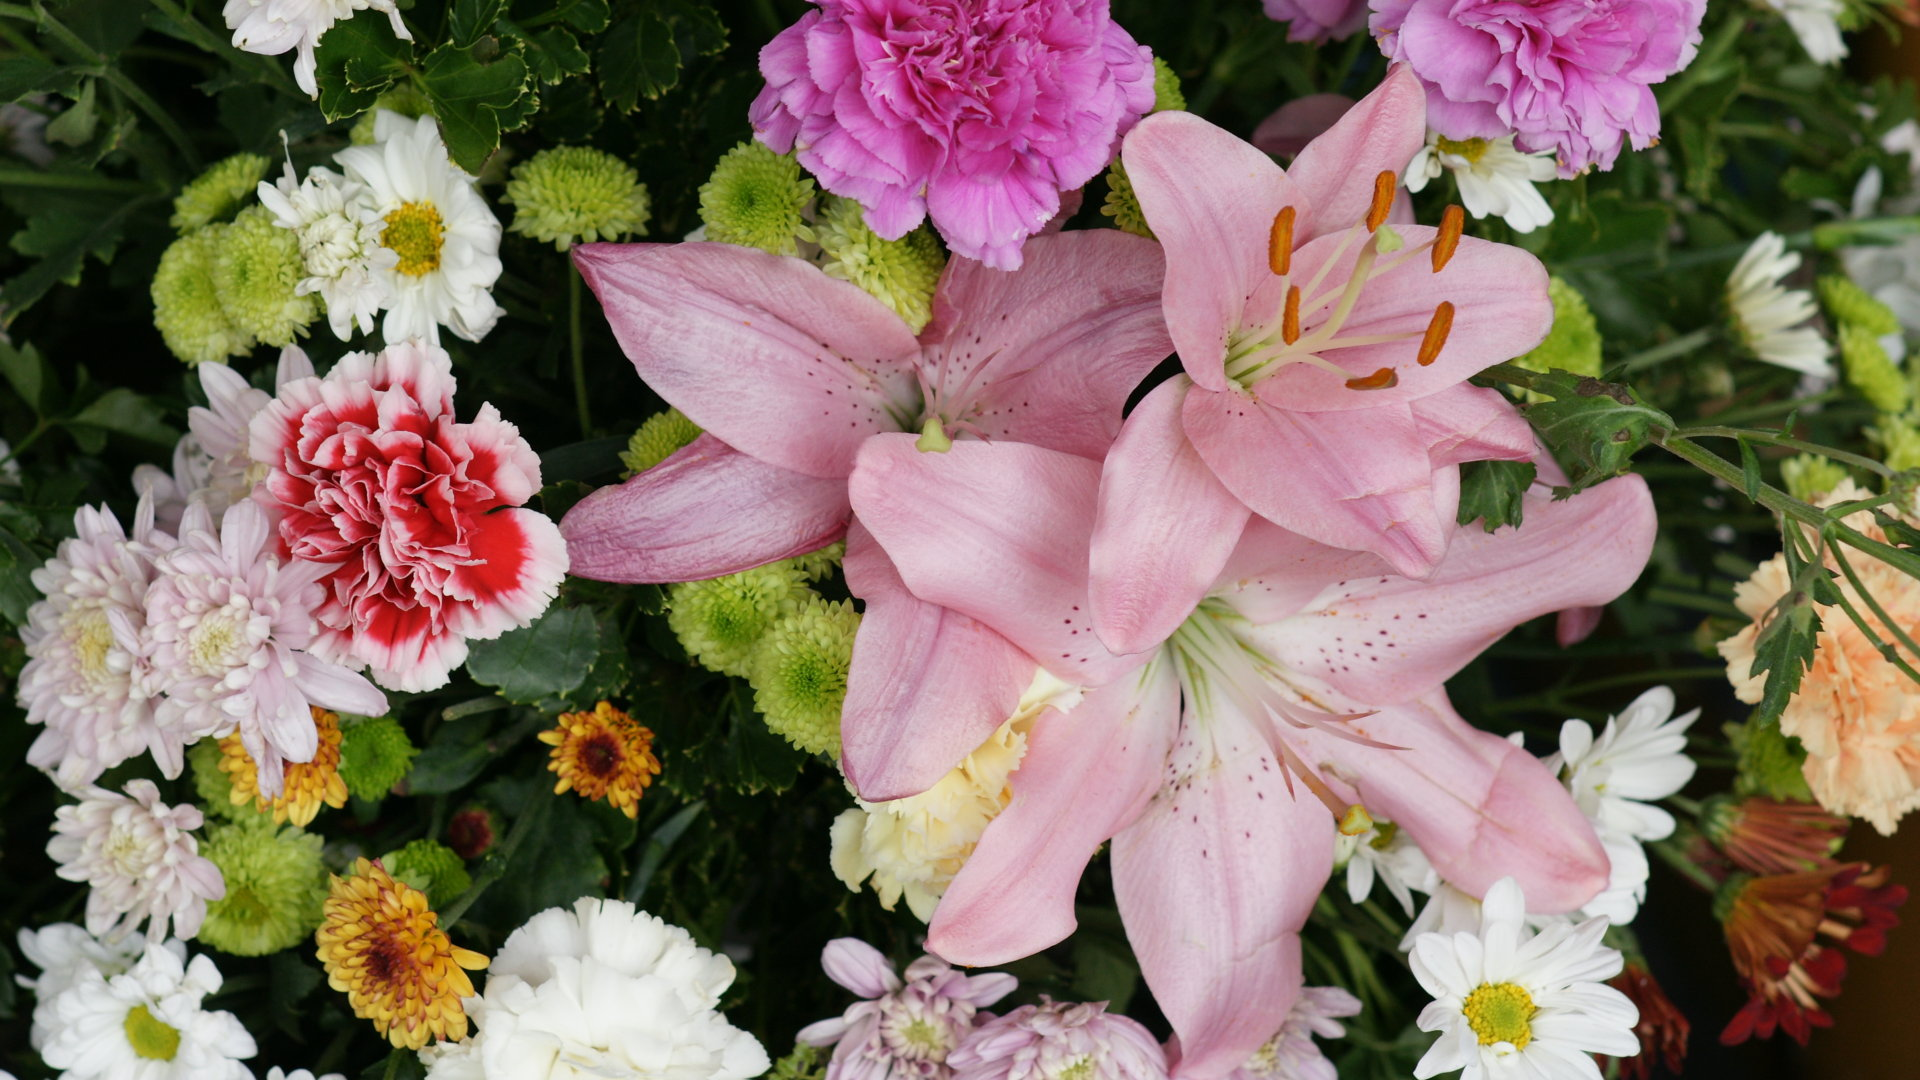 HD Wallpaper Download 2560x1440 Roses Carnations Lilies